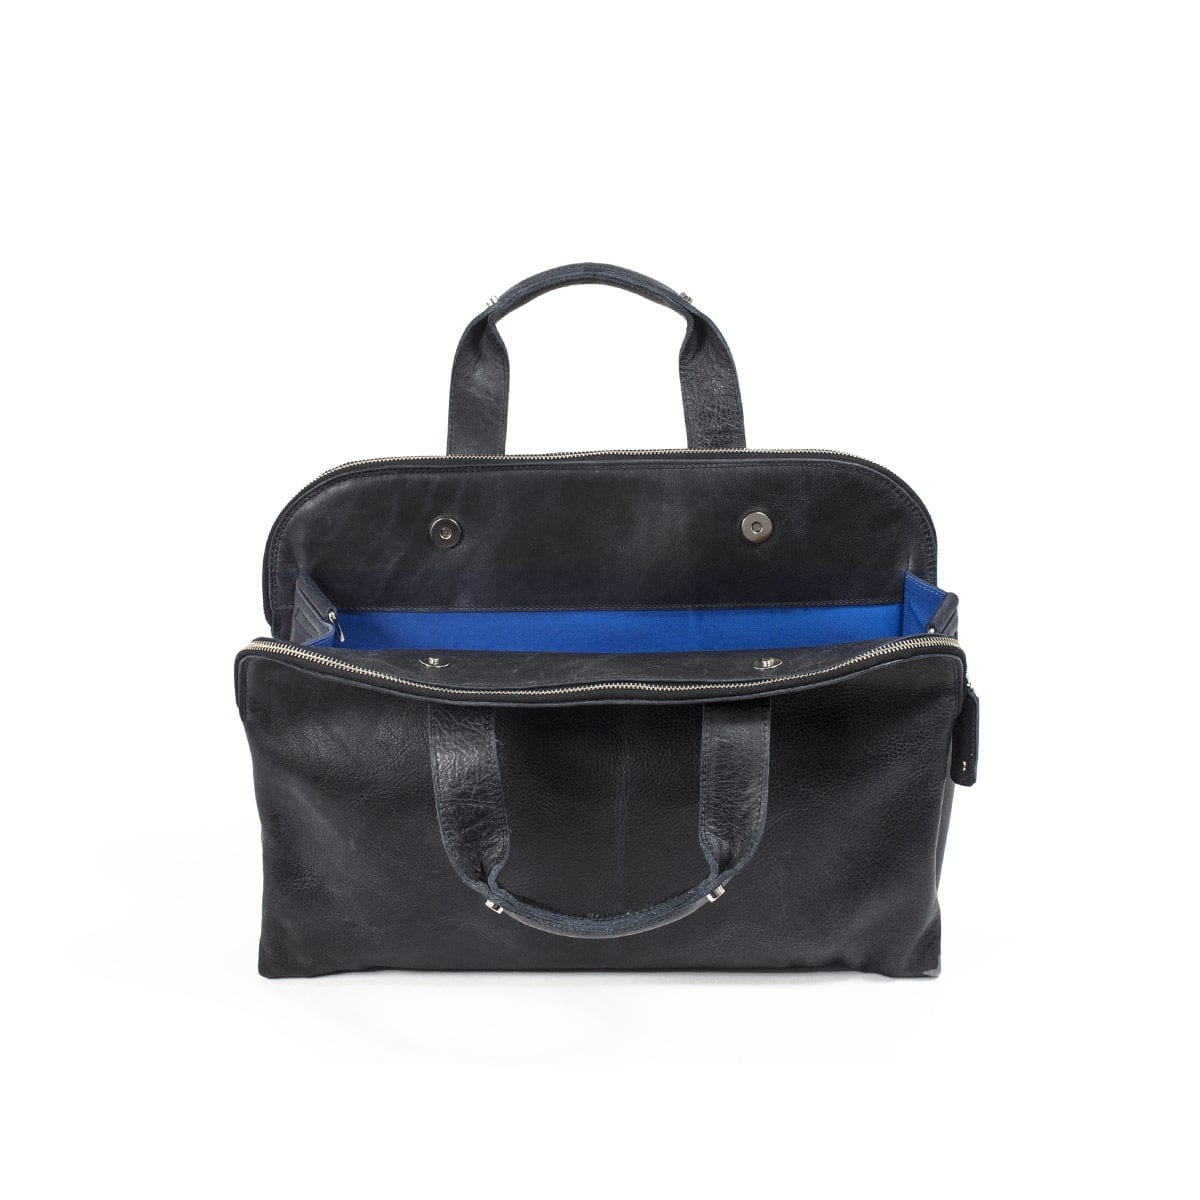 LUMI James Business Bag, in black, is created using vegetable tanned, pull-up waxed leather.